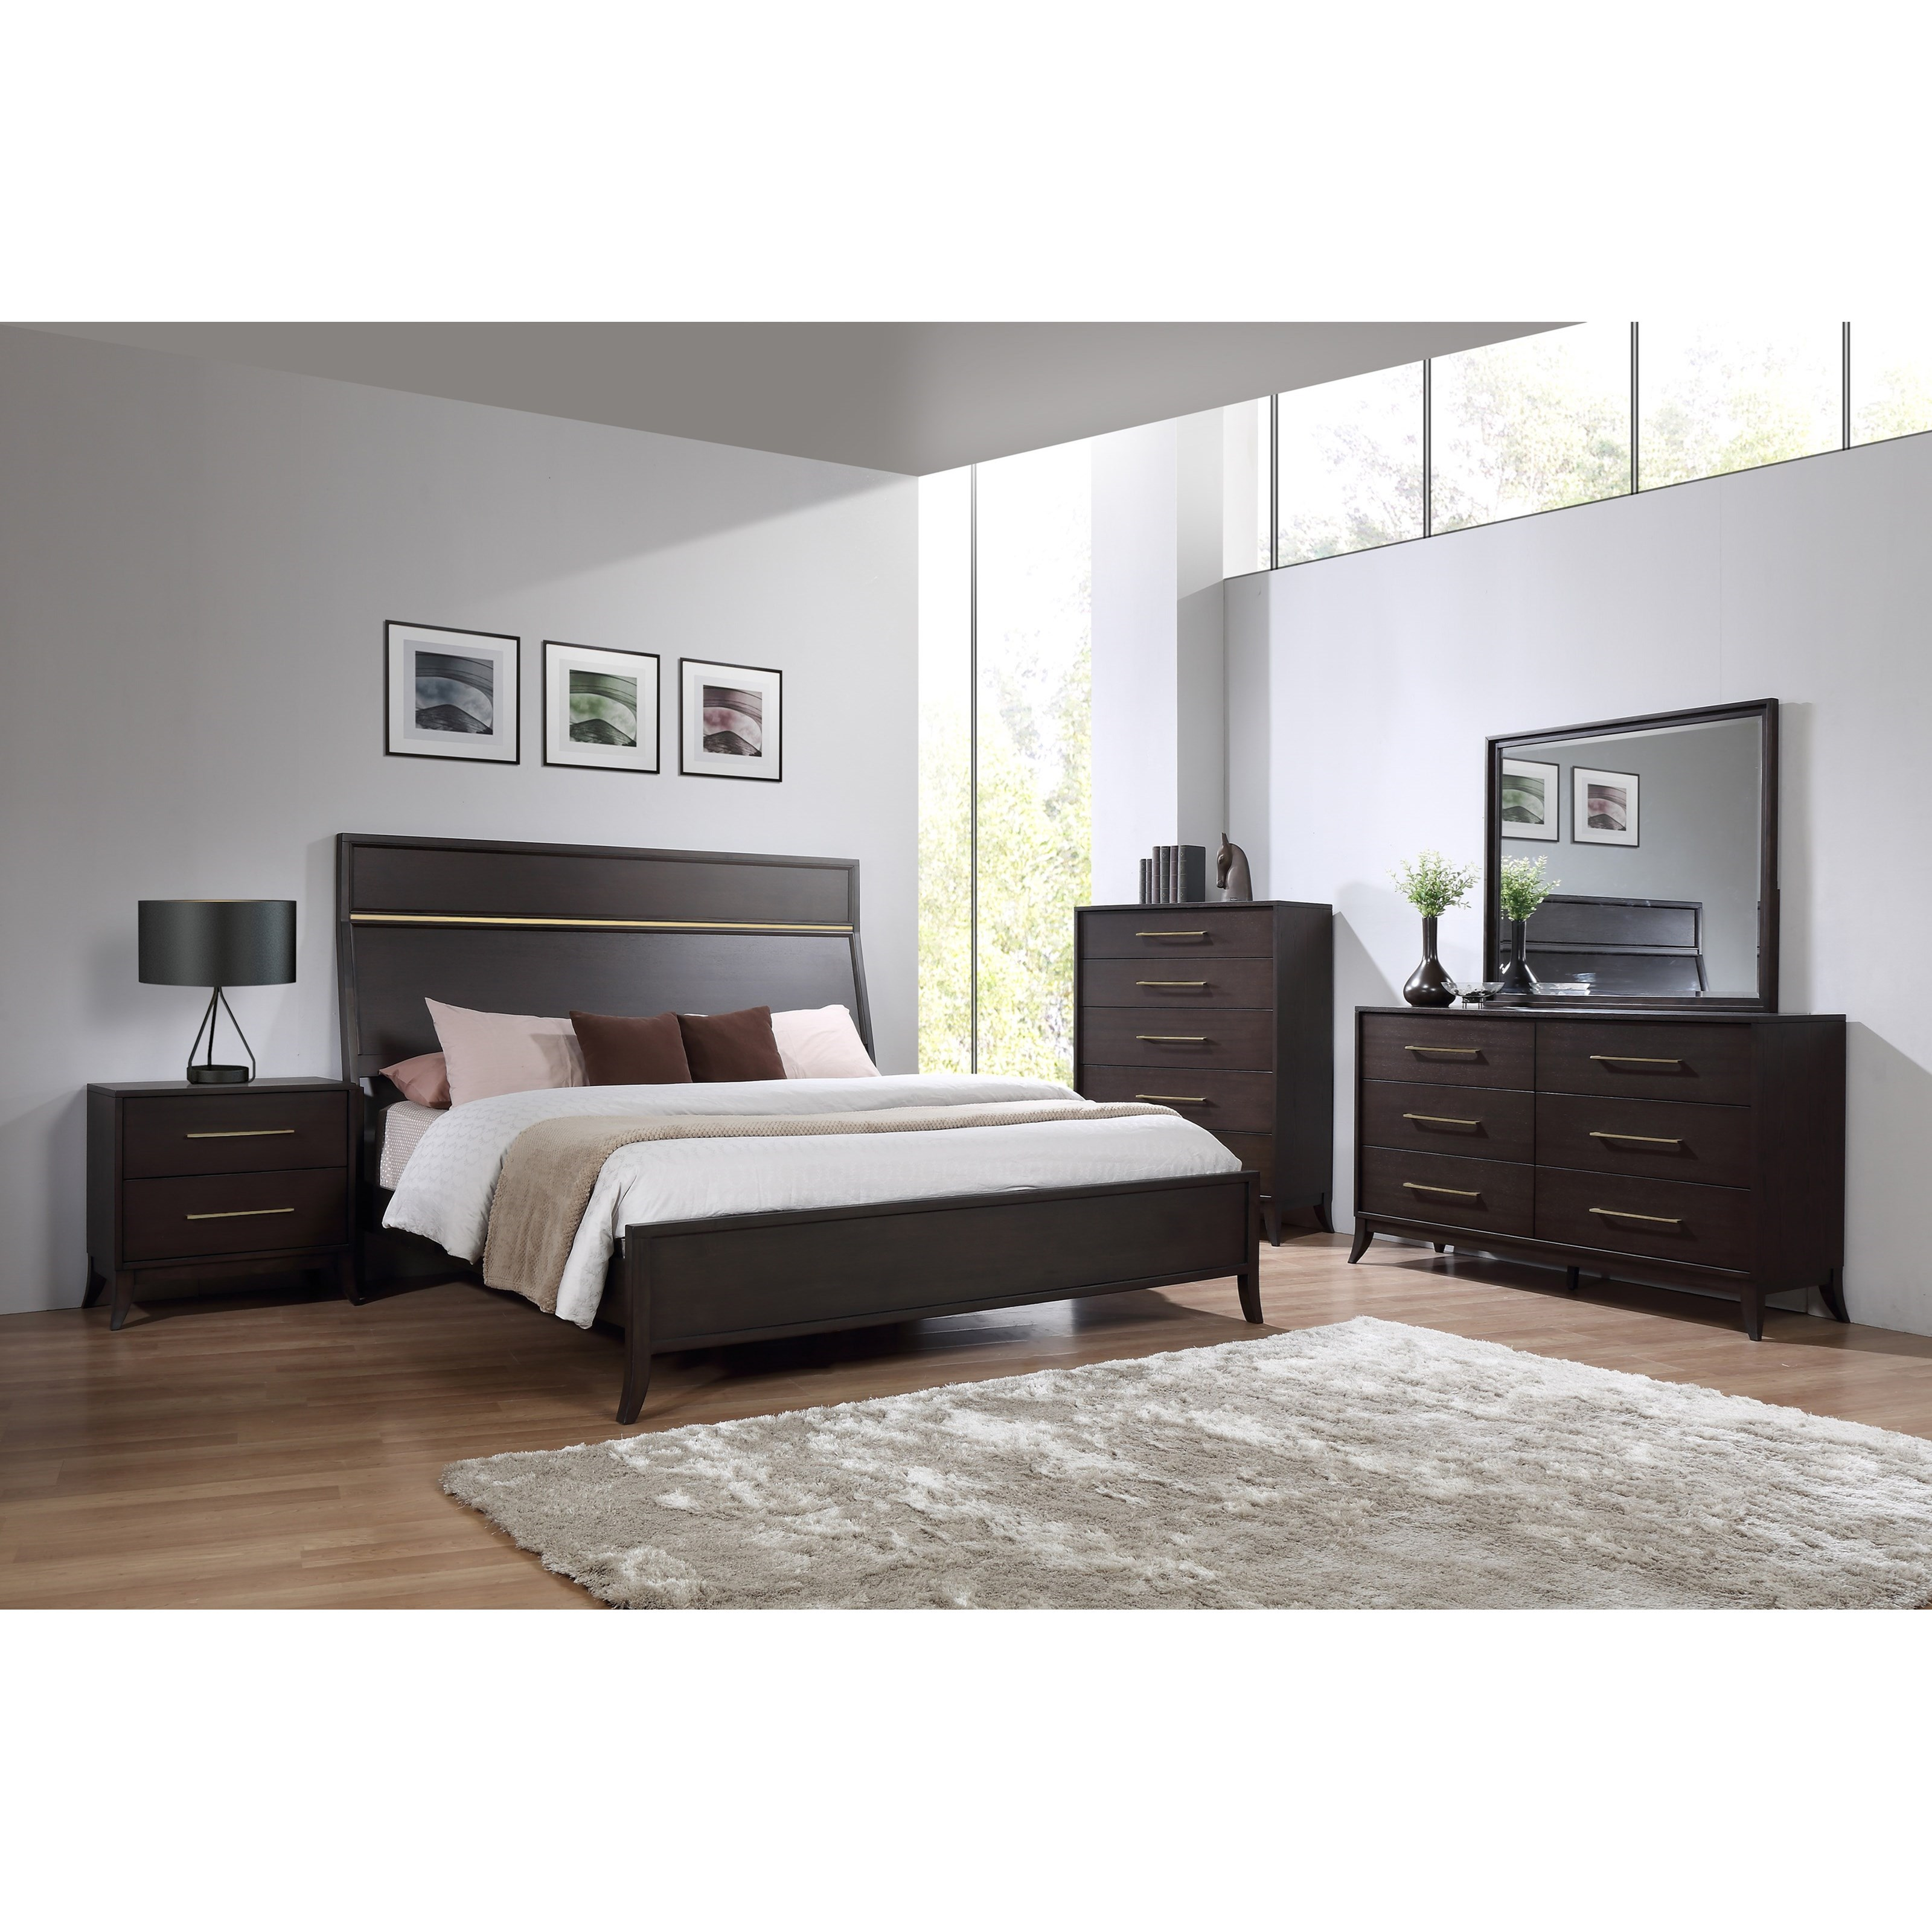 Logan Square California King Bedroom Group by New Classic at Wilcox Furniture